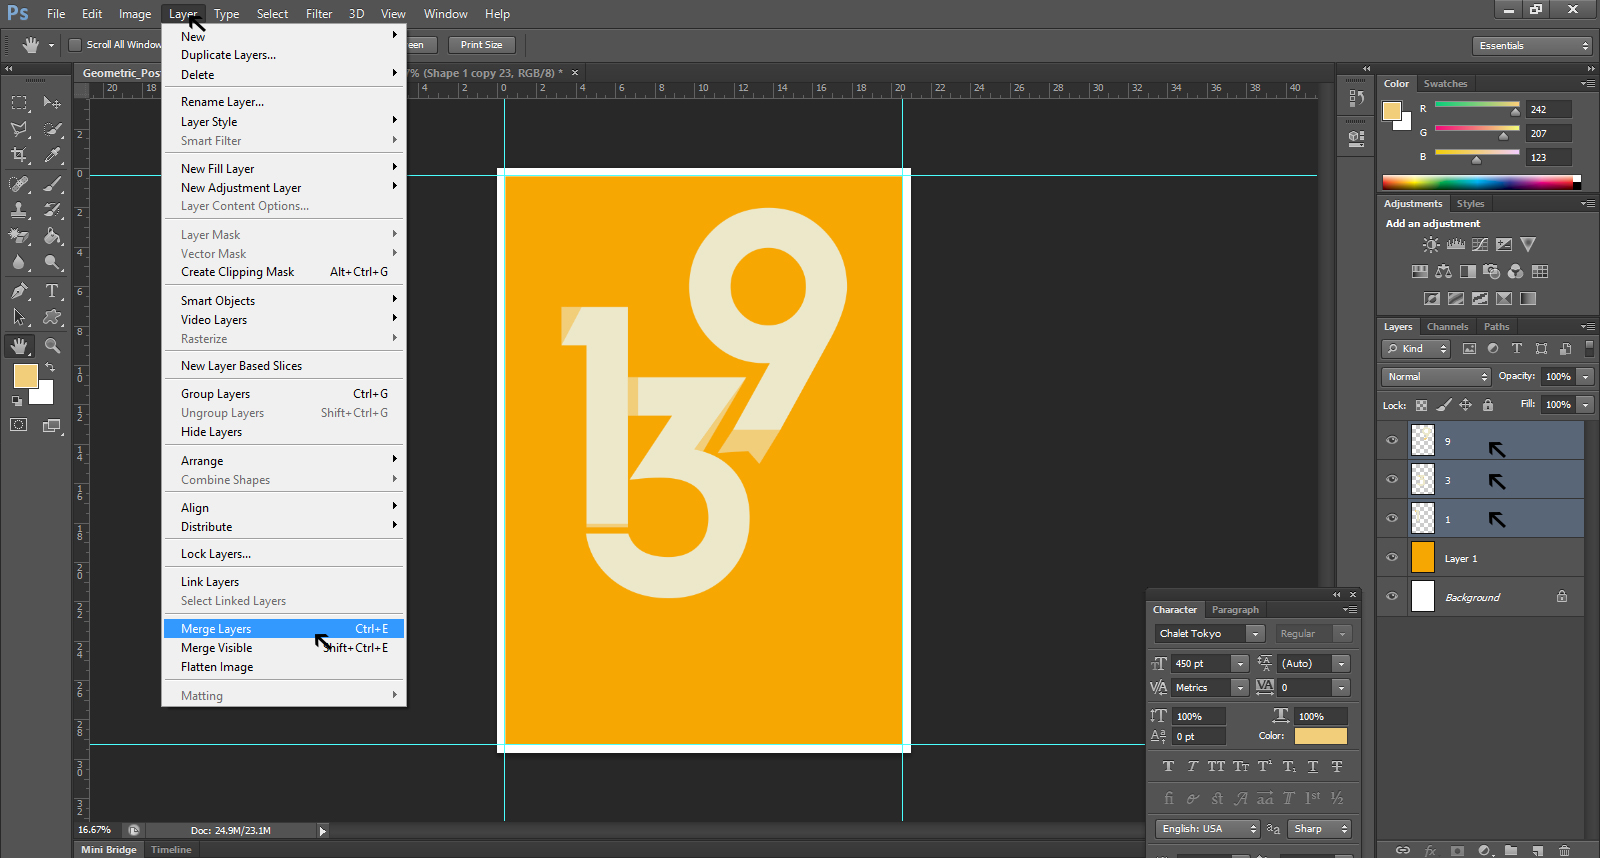 Geometric Poster Design Photoshop Tutorial